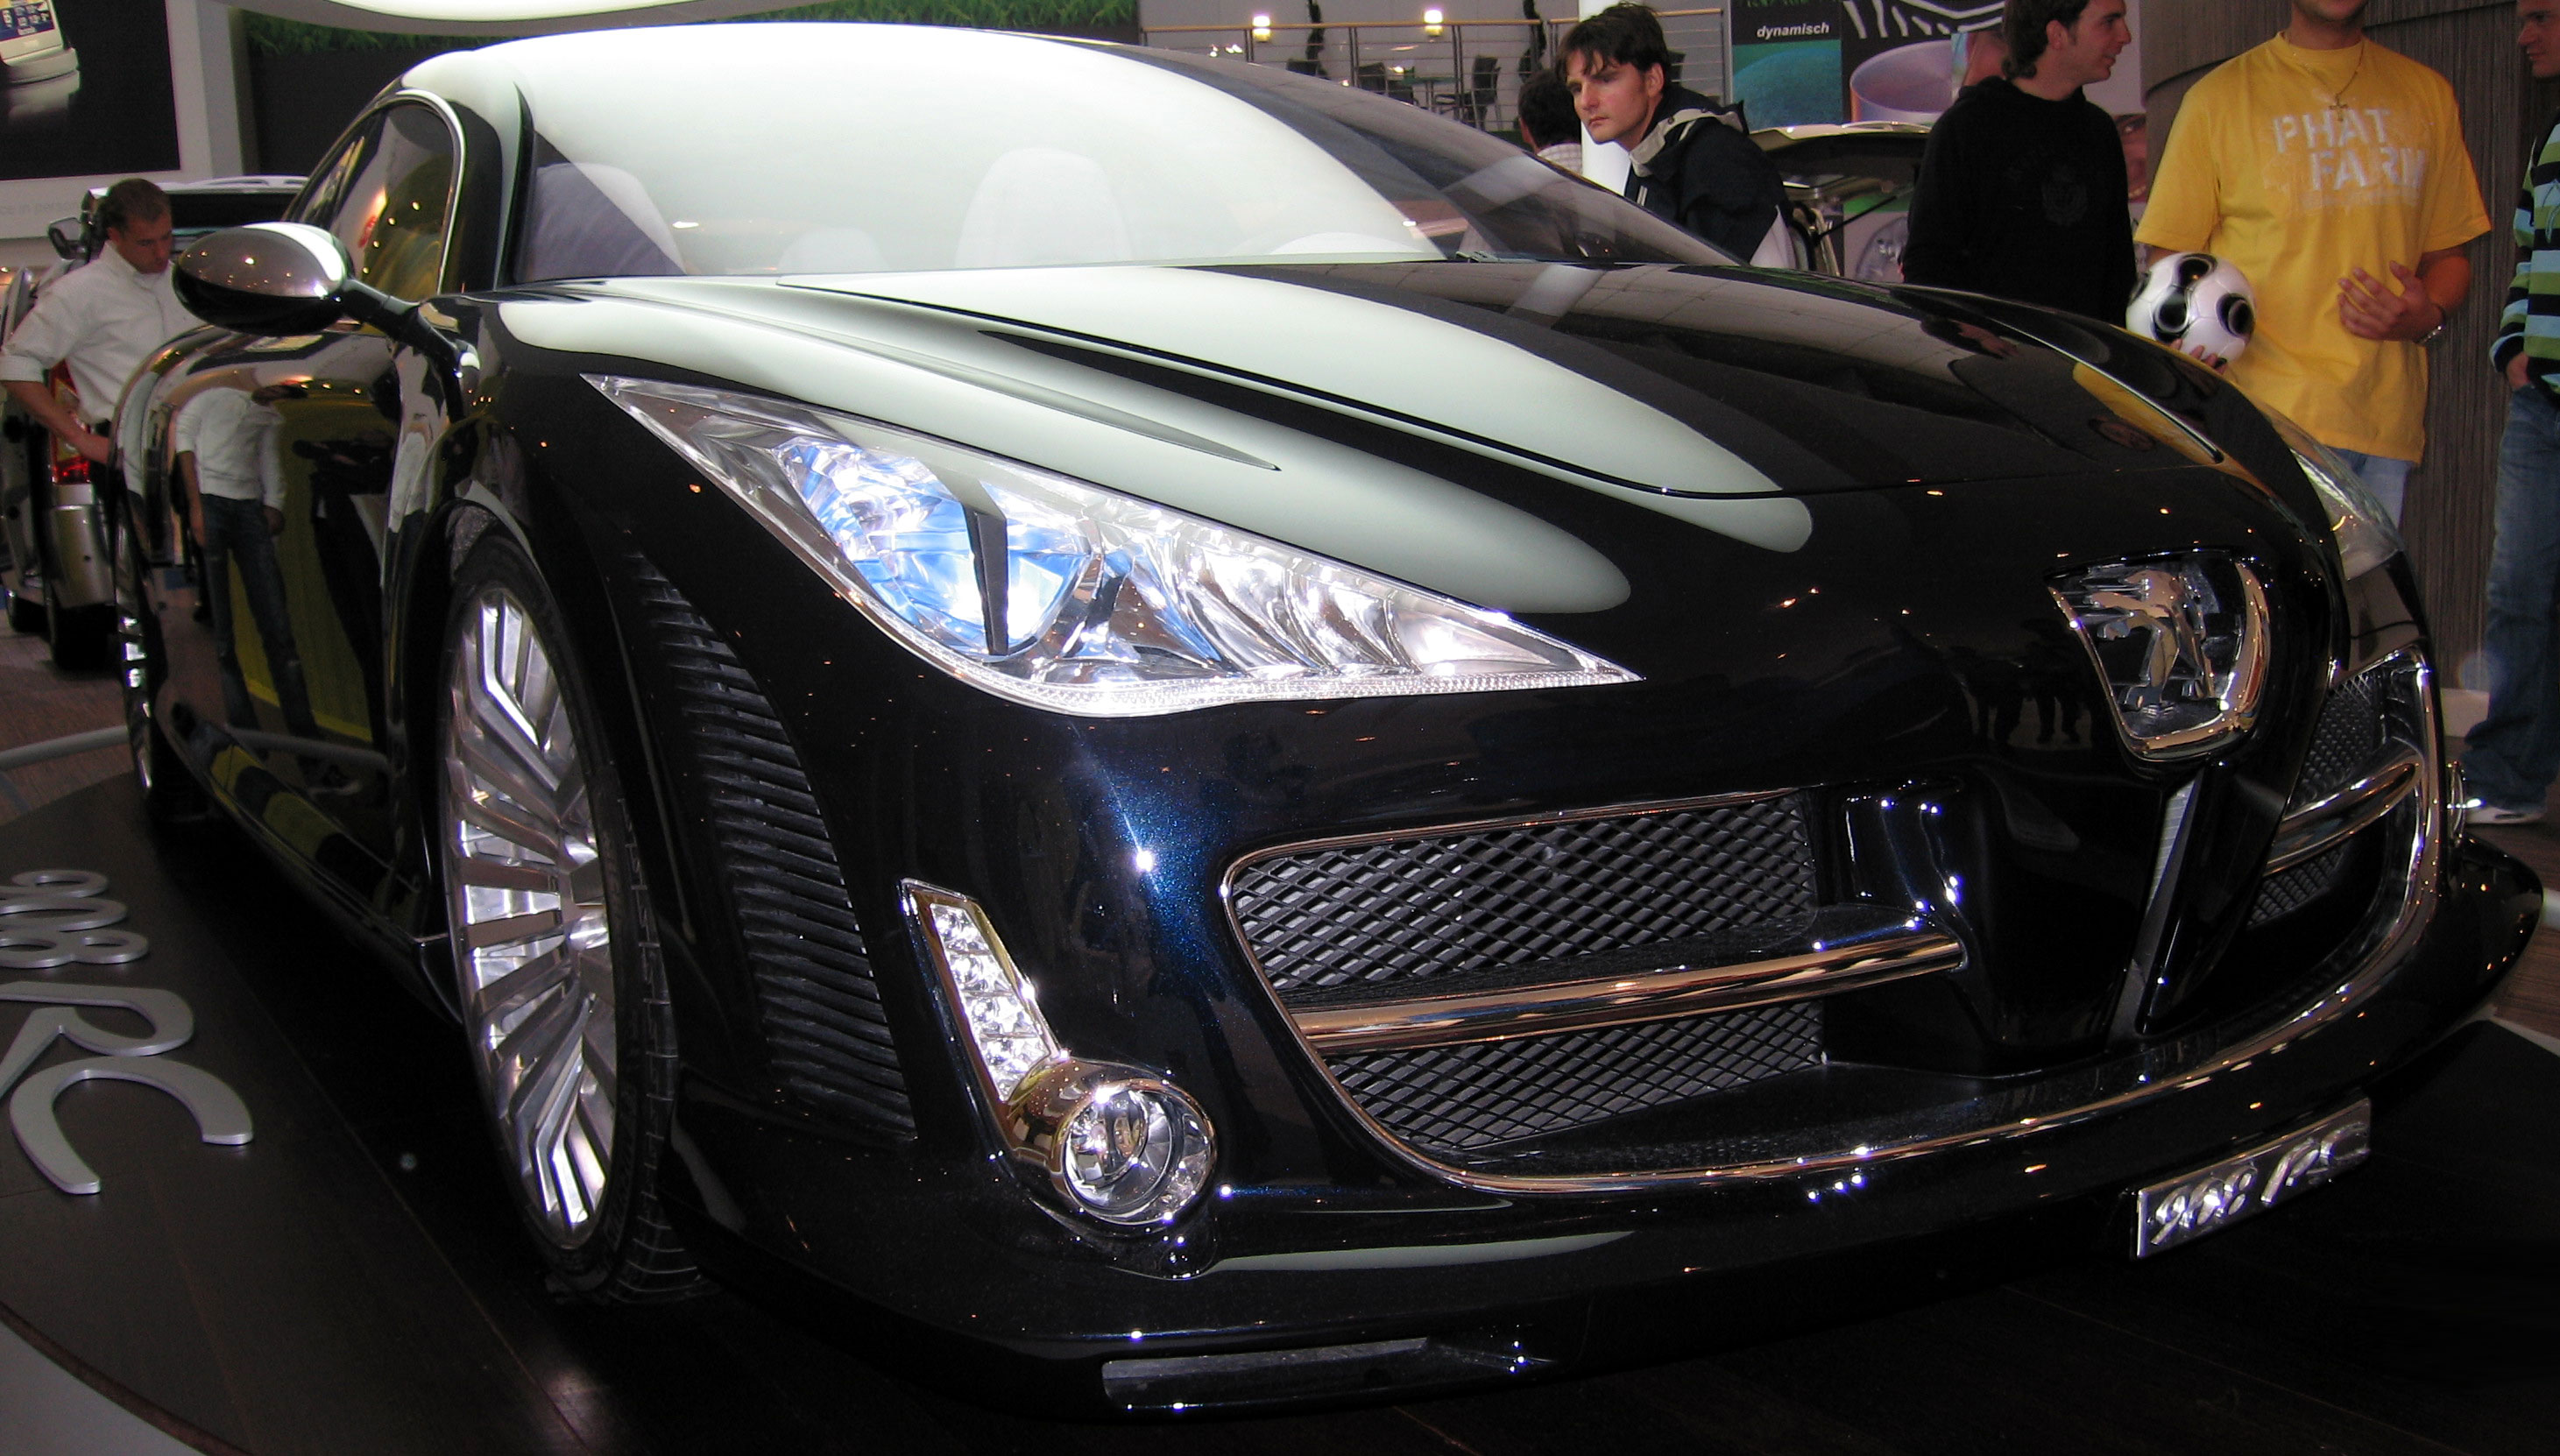 File:Peugeot 908 RC front.jpg - Wikimedia Commons